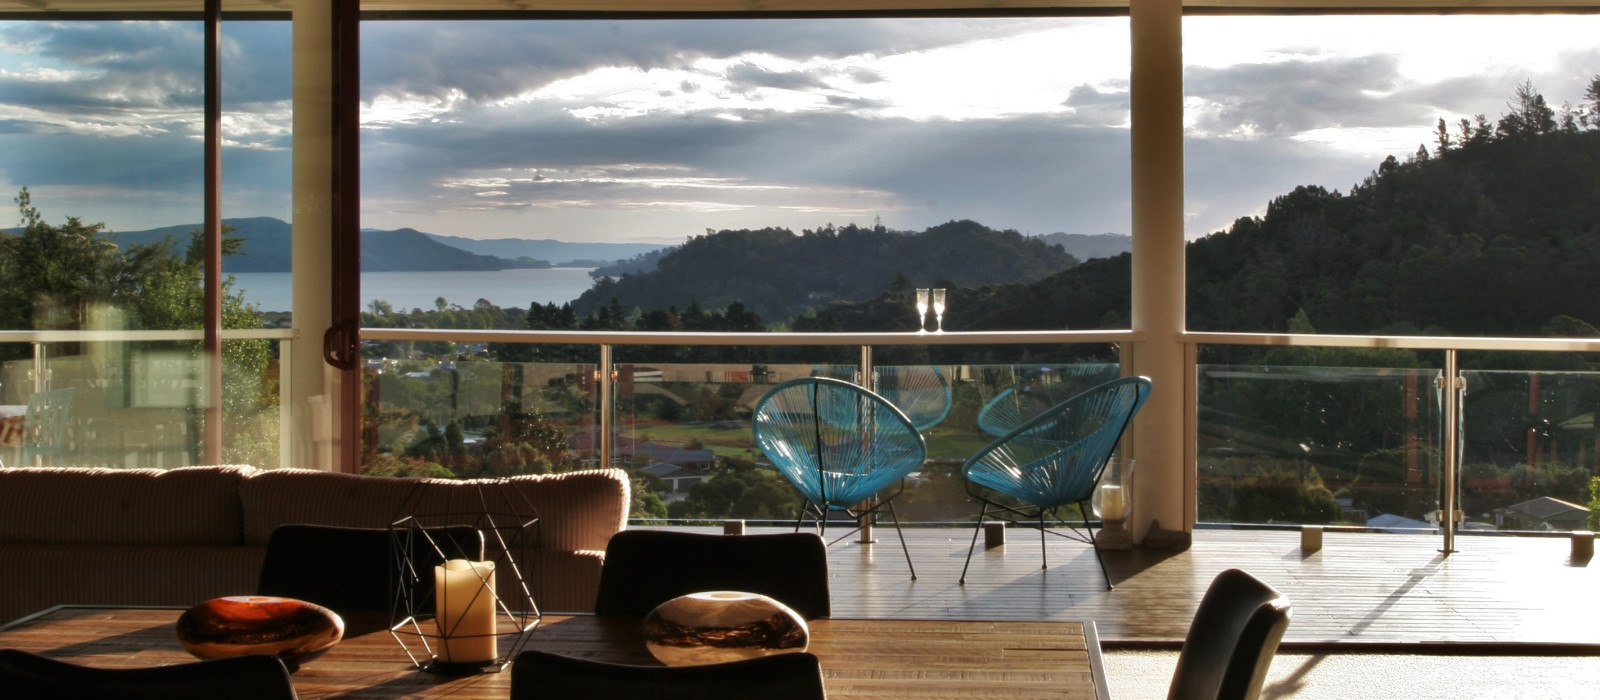 Hotel Coromandel Views B&B New Zealand